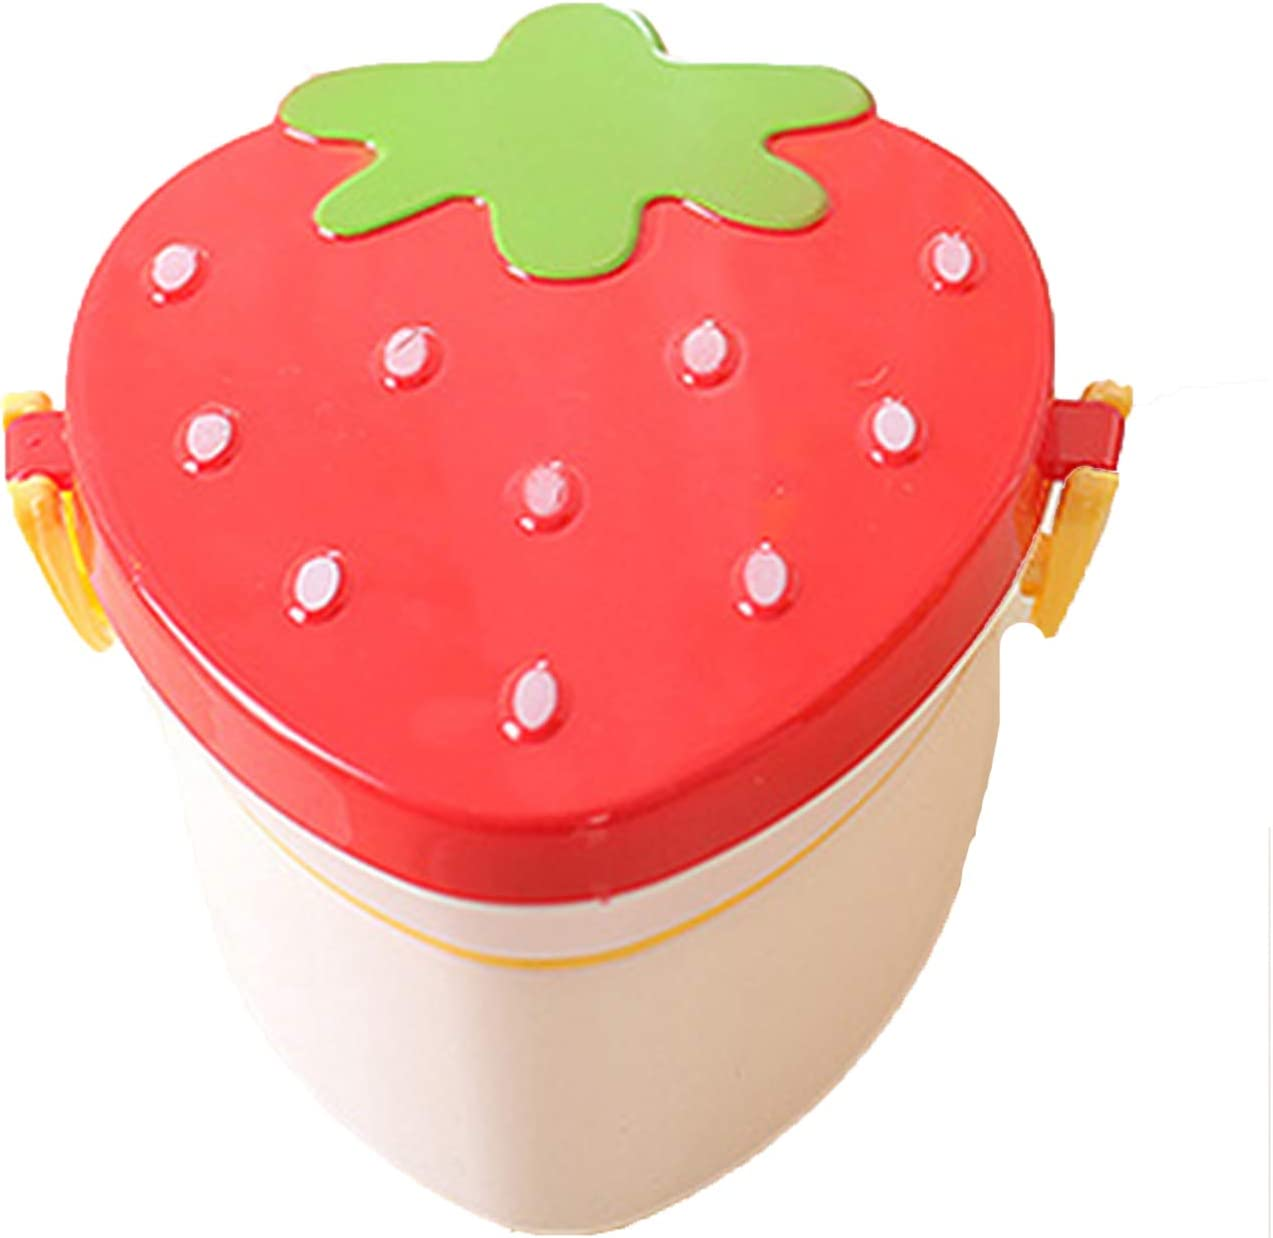 500ml Strawberry Shape Lunch Box 2 Layer Food Fruit Storage Bento Boxs Red Pink Microwave Tableware Kid Cute School Bowl 02